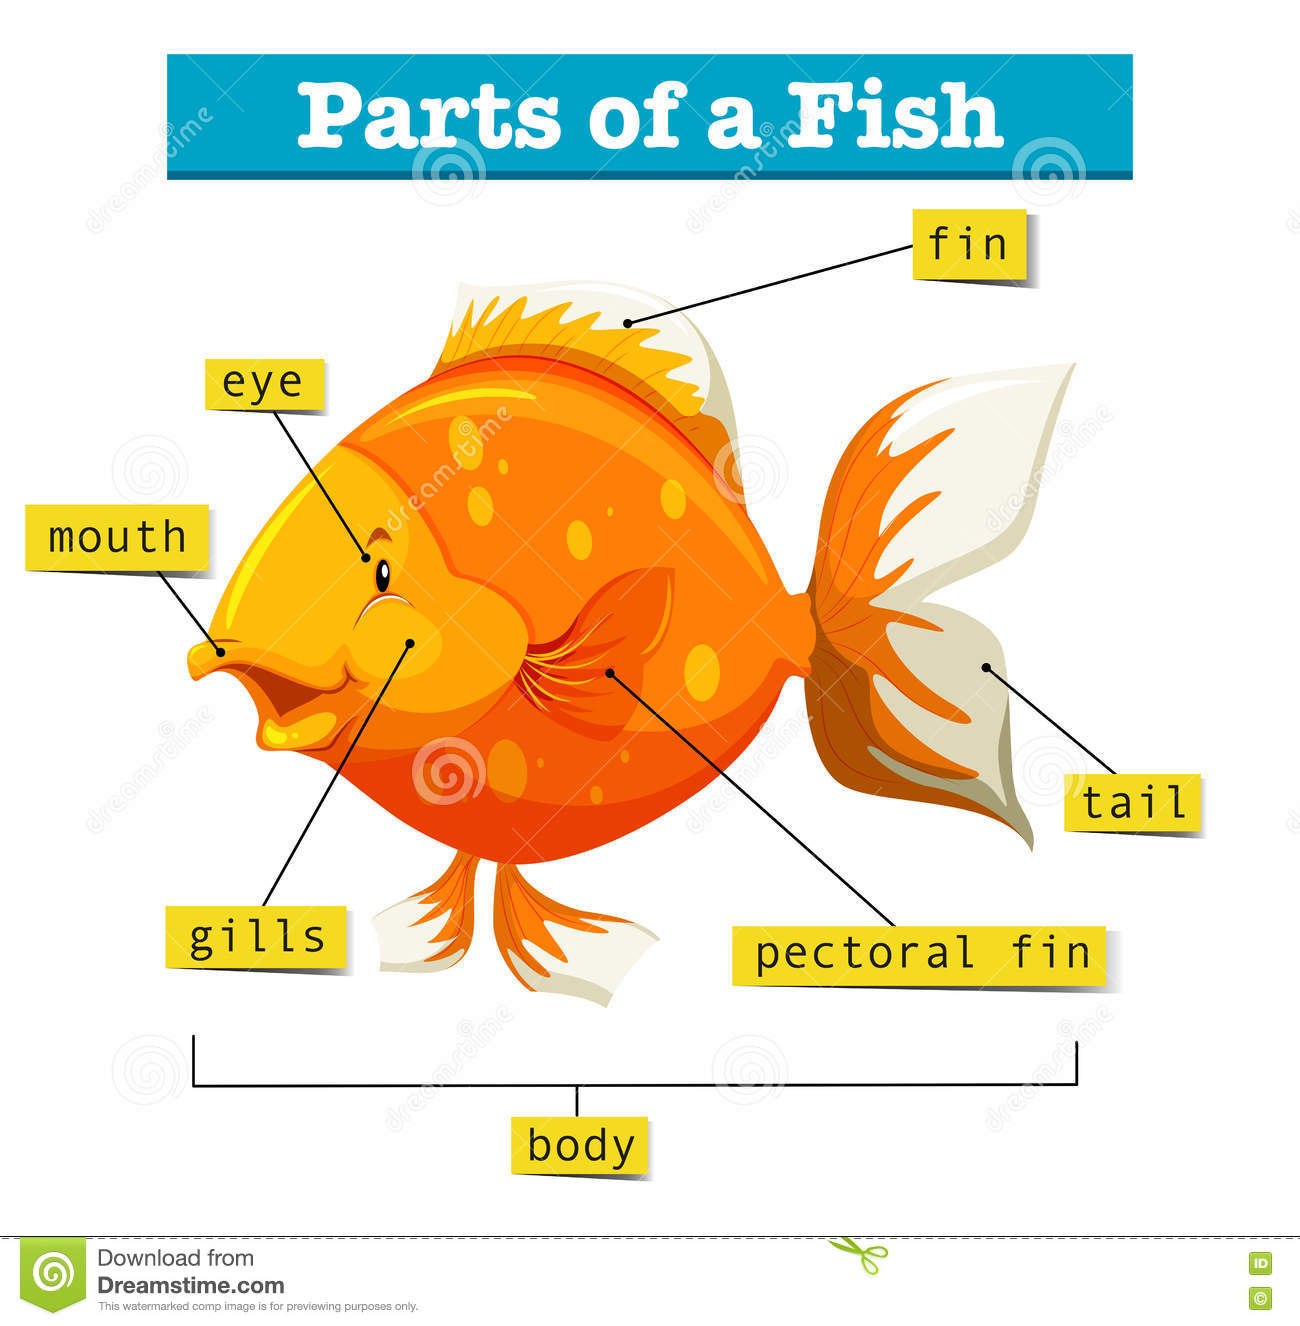 Blank Diagram Of Parts Of A Fish - Auto Electrical Wiring Diagram •